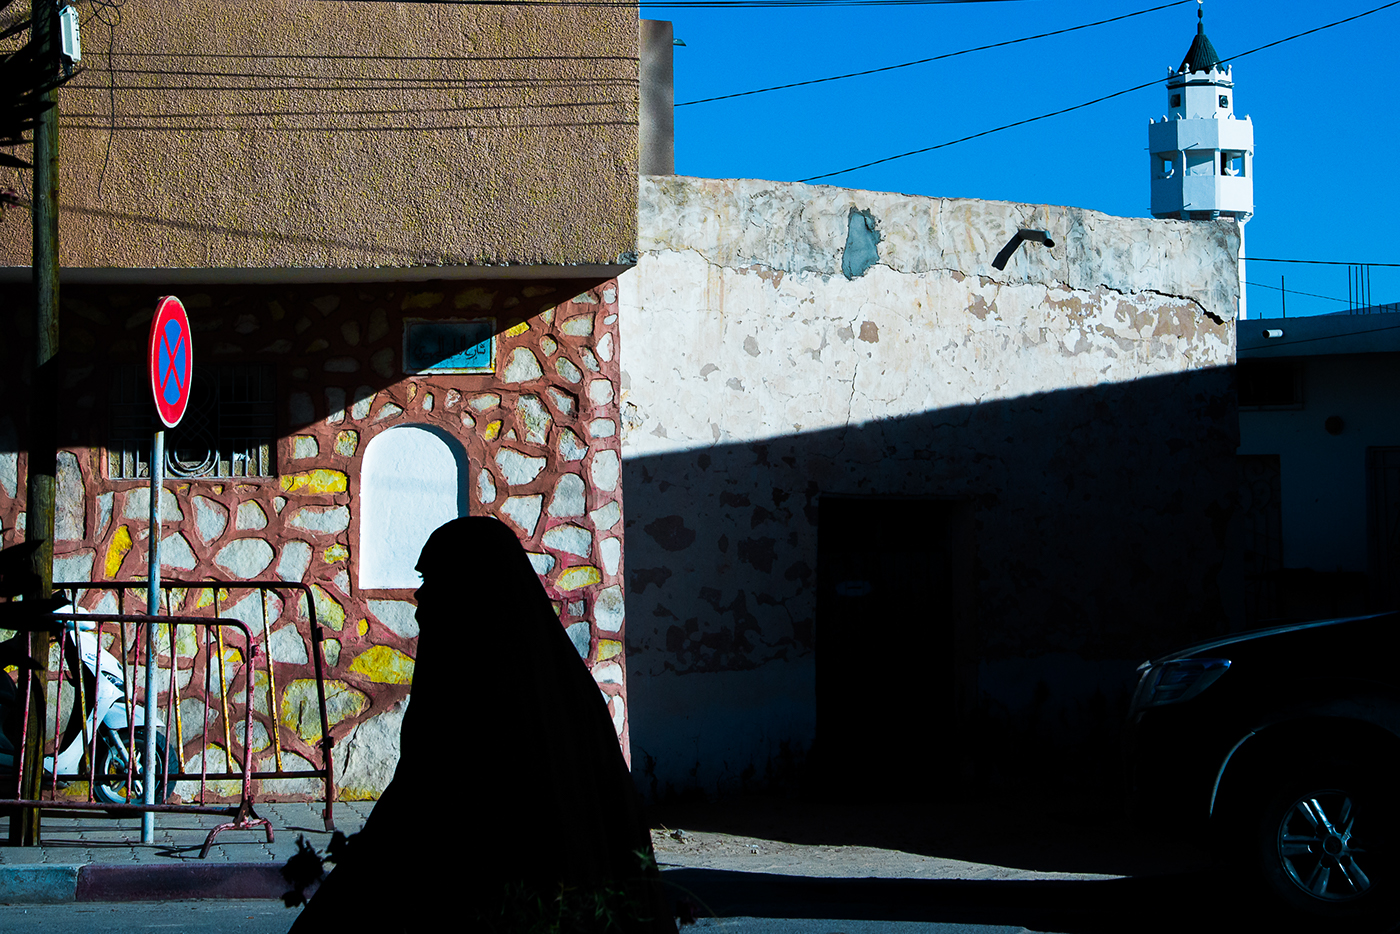 Street Photography of Tunisia by Skander Khlif